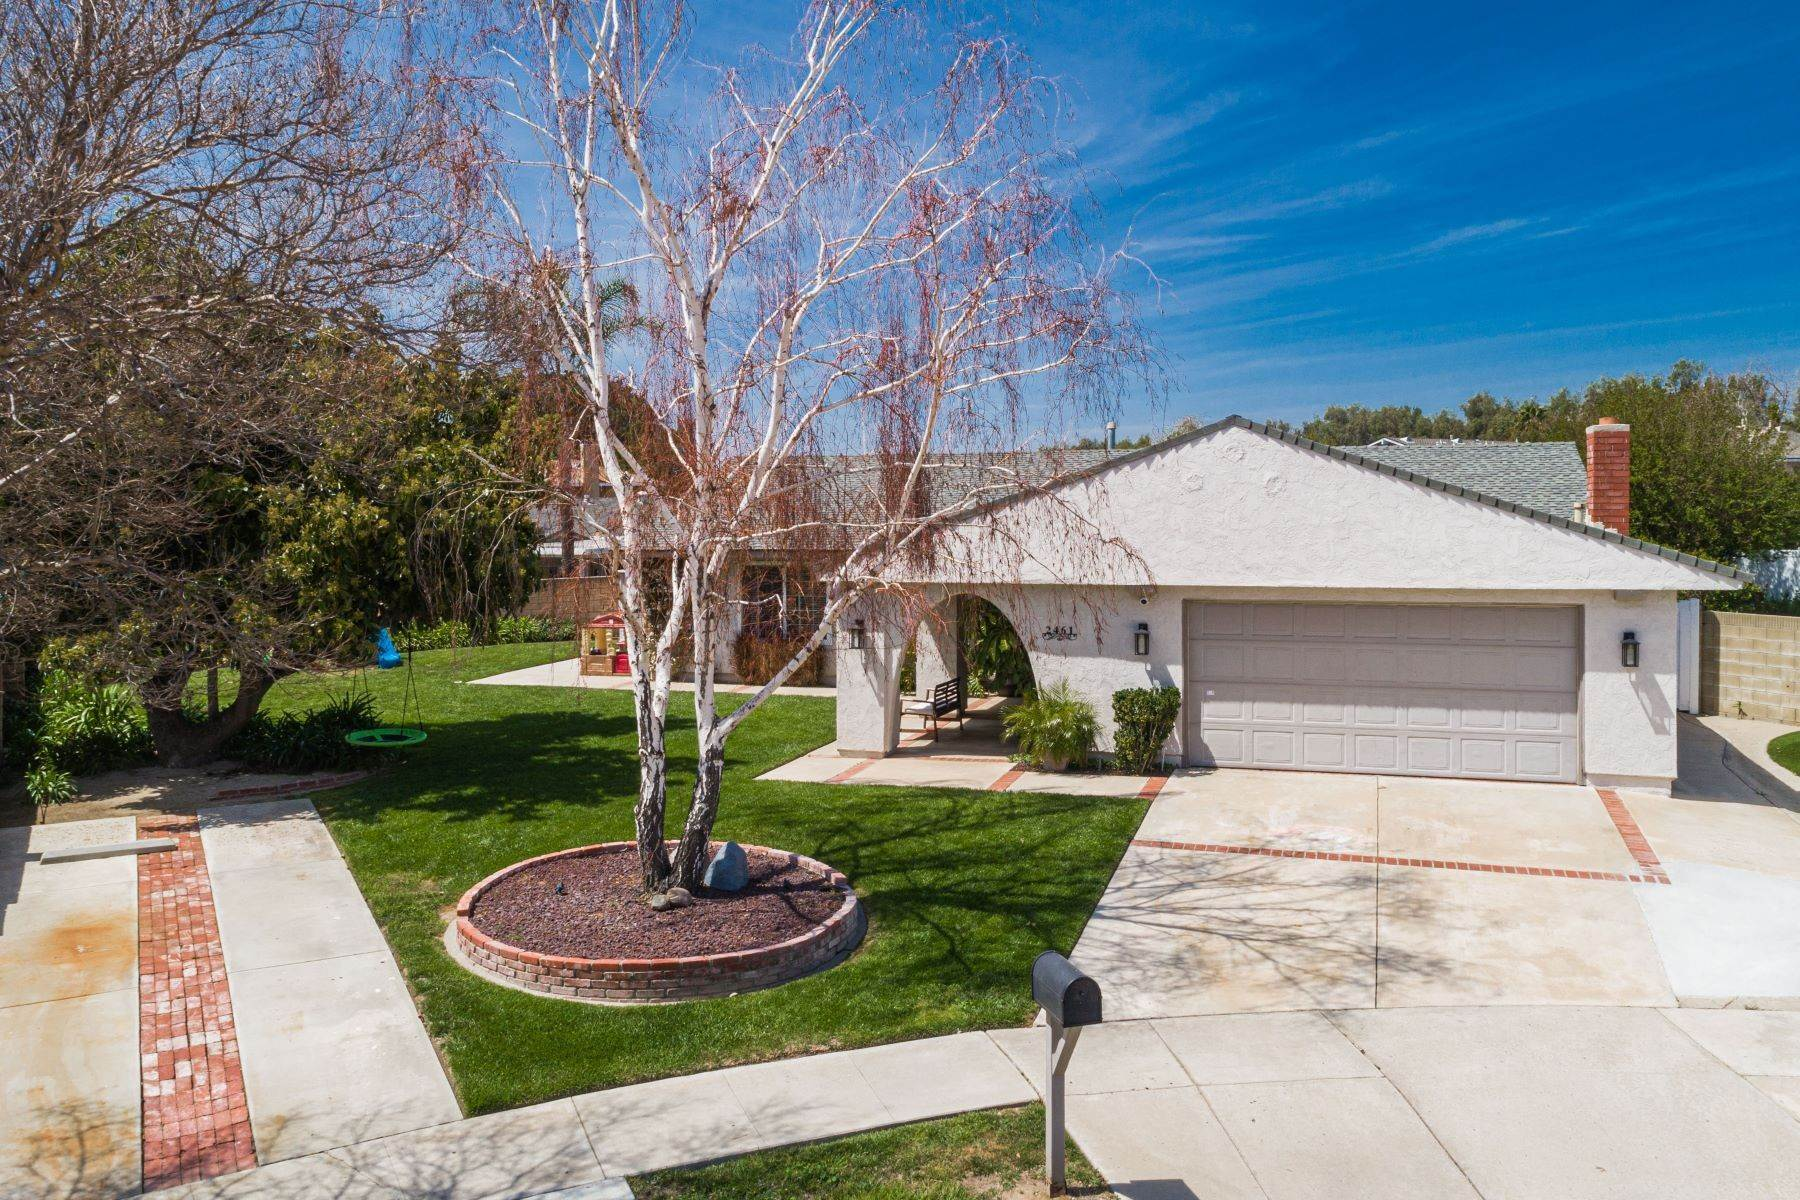 Single Family Homes for Sale at 2461Lita Place 2461 Lita Place Simi Valley, California 93063 United States